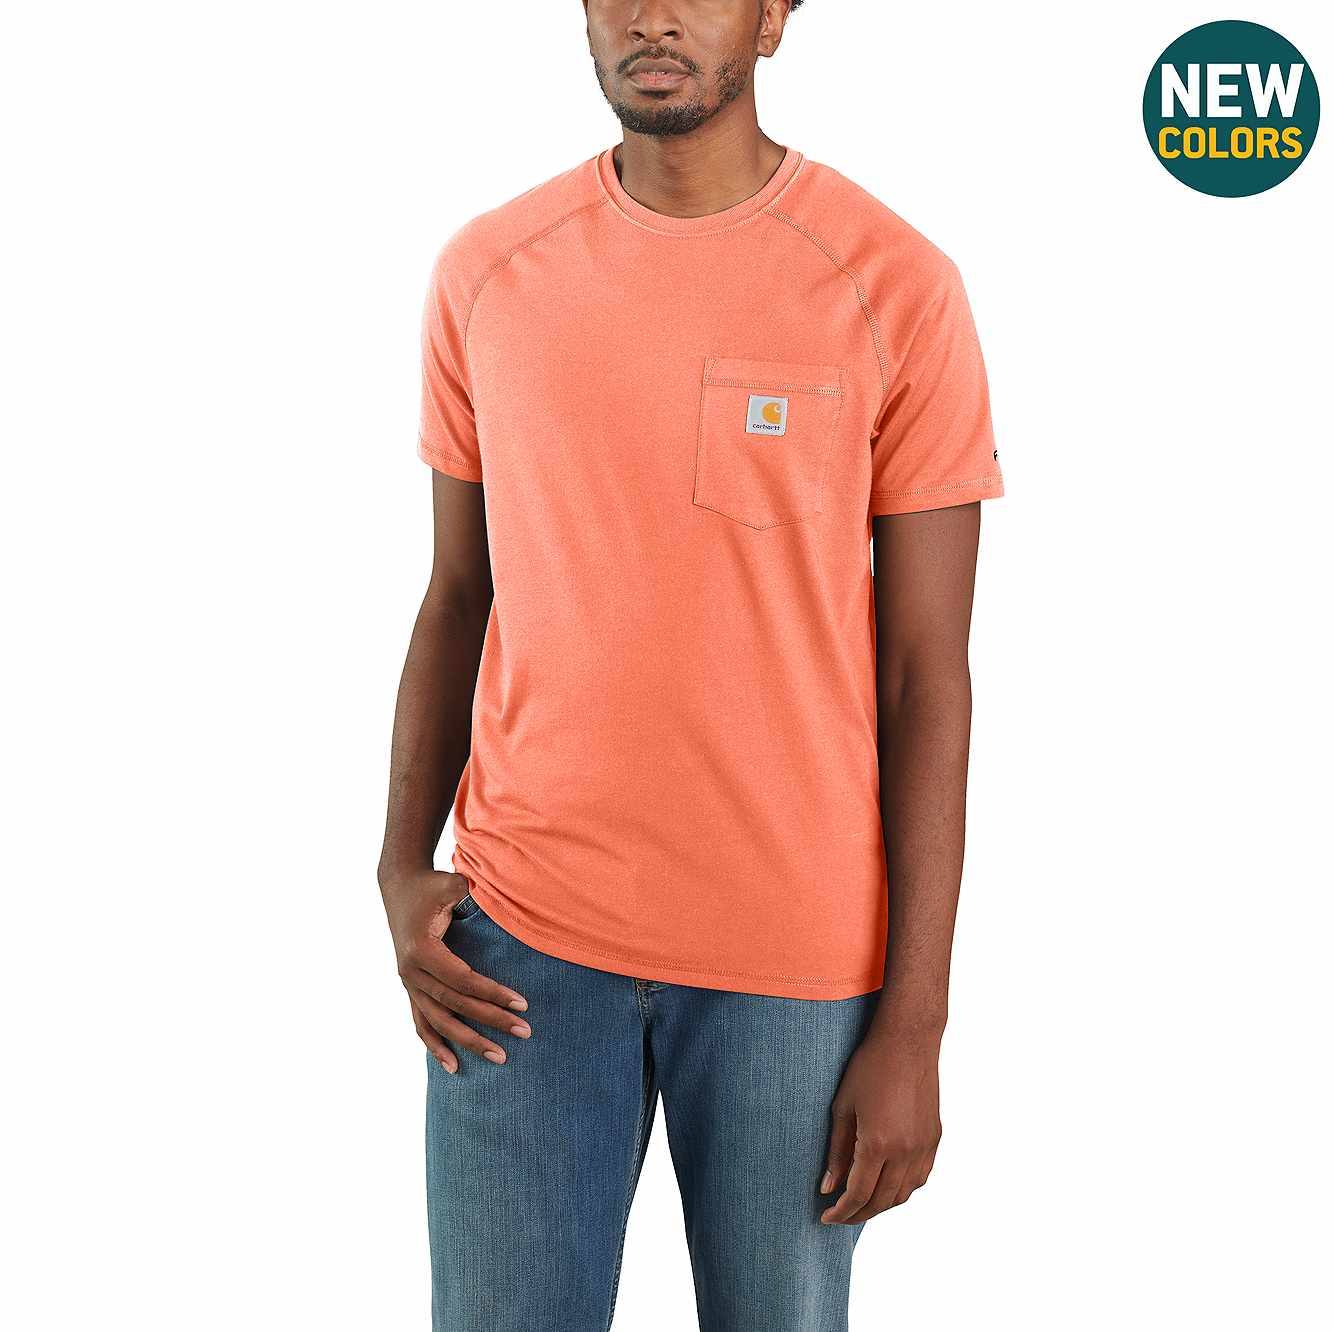 Picture of Carhartt Force® Cotton Delmont Short-Sleeve T-Shirt in Pumpkin